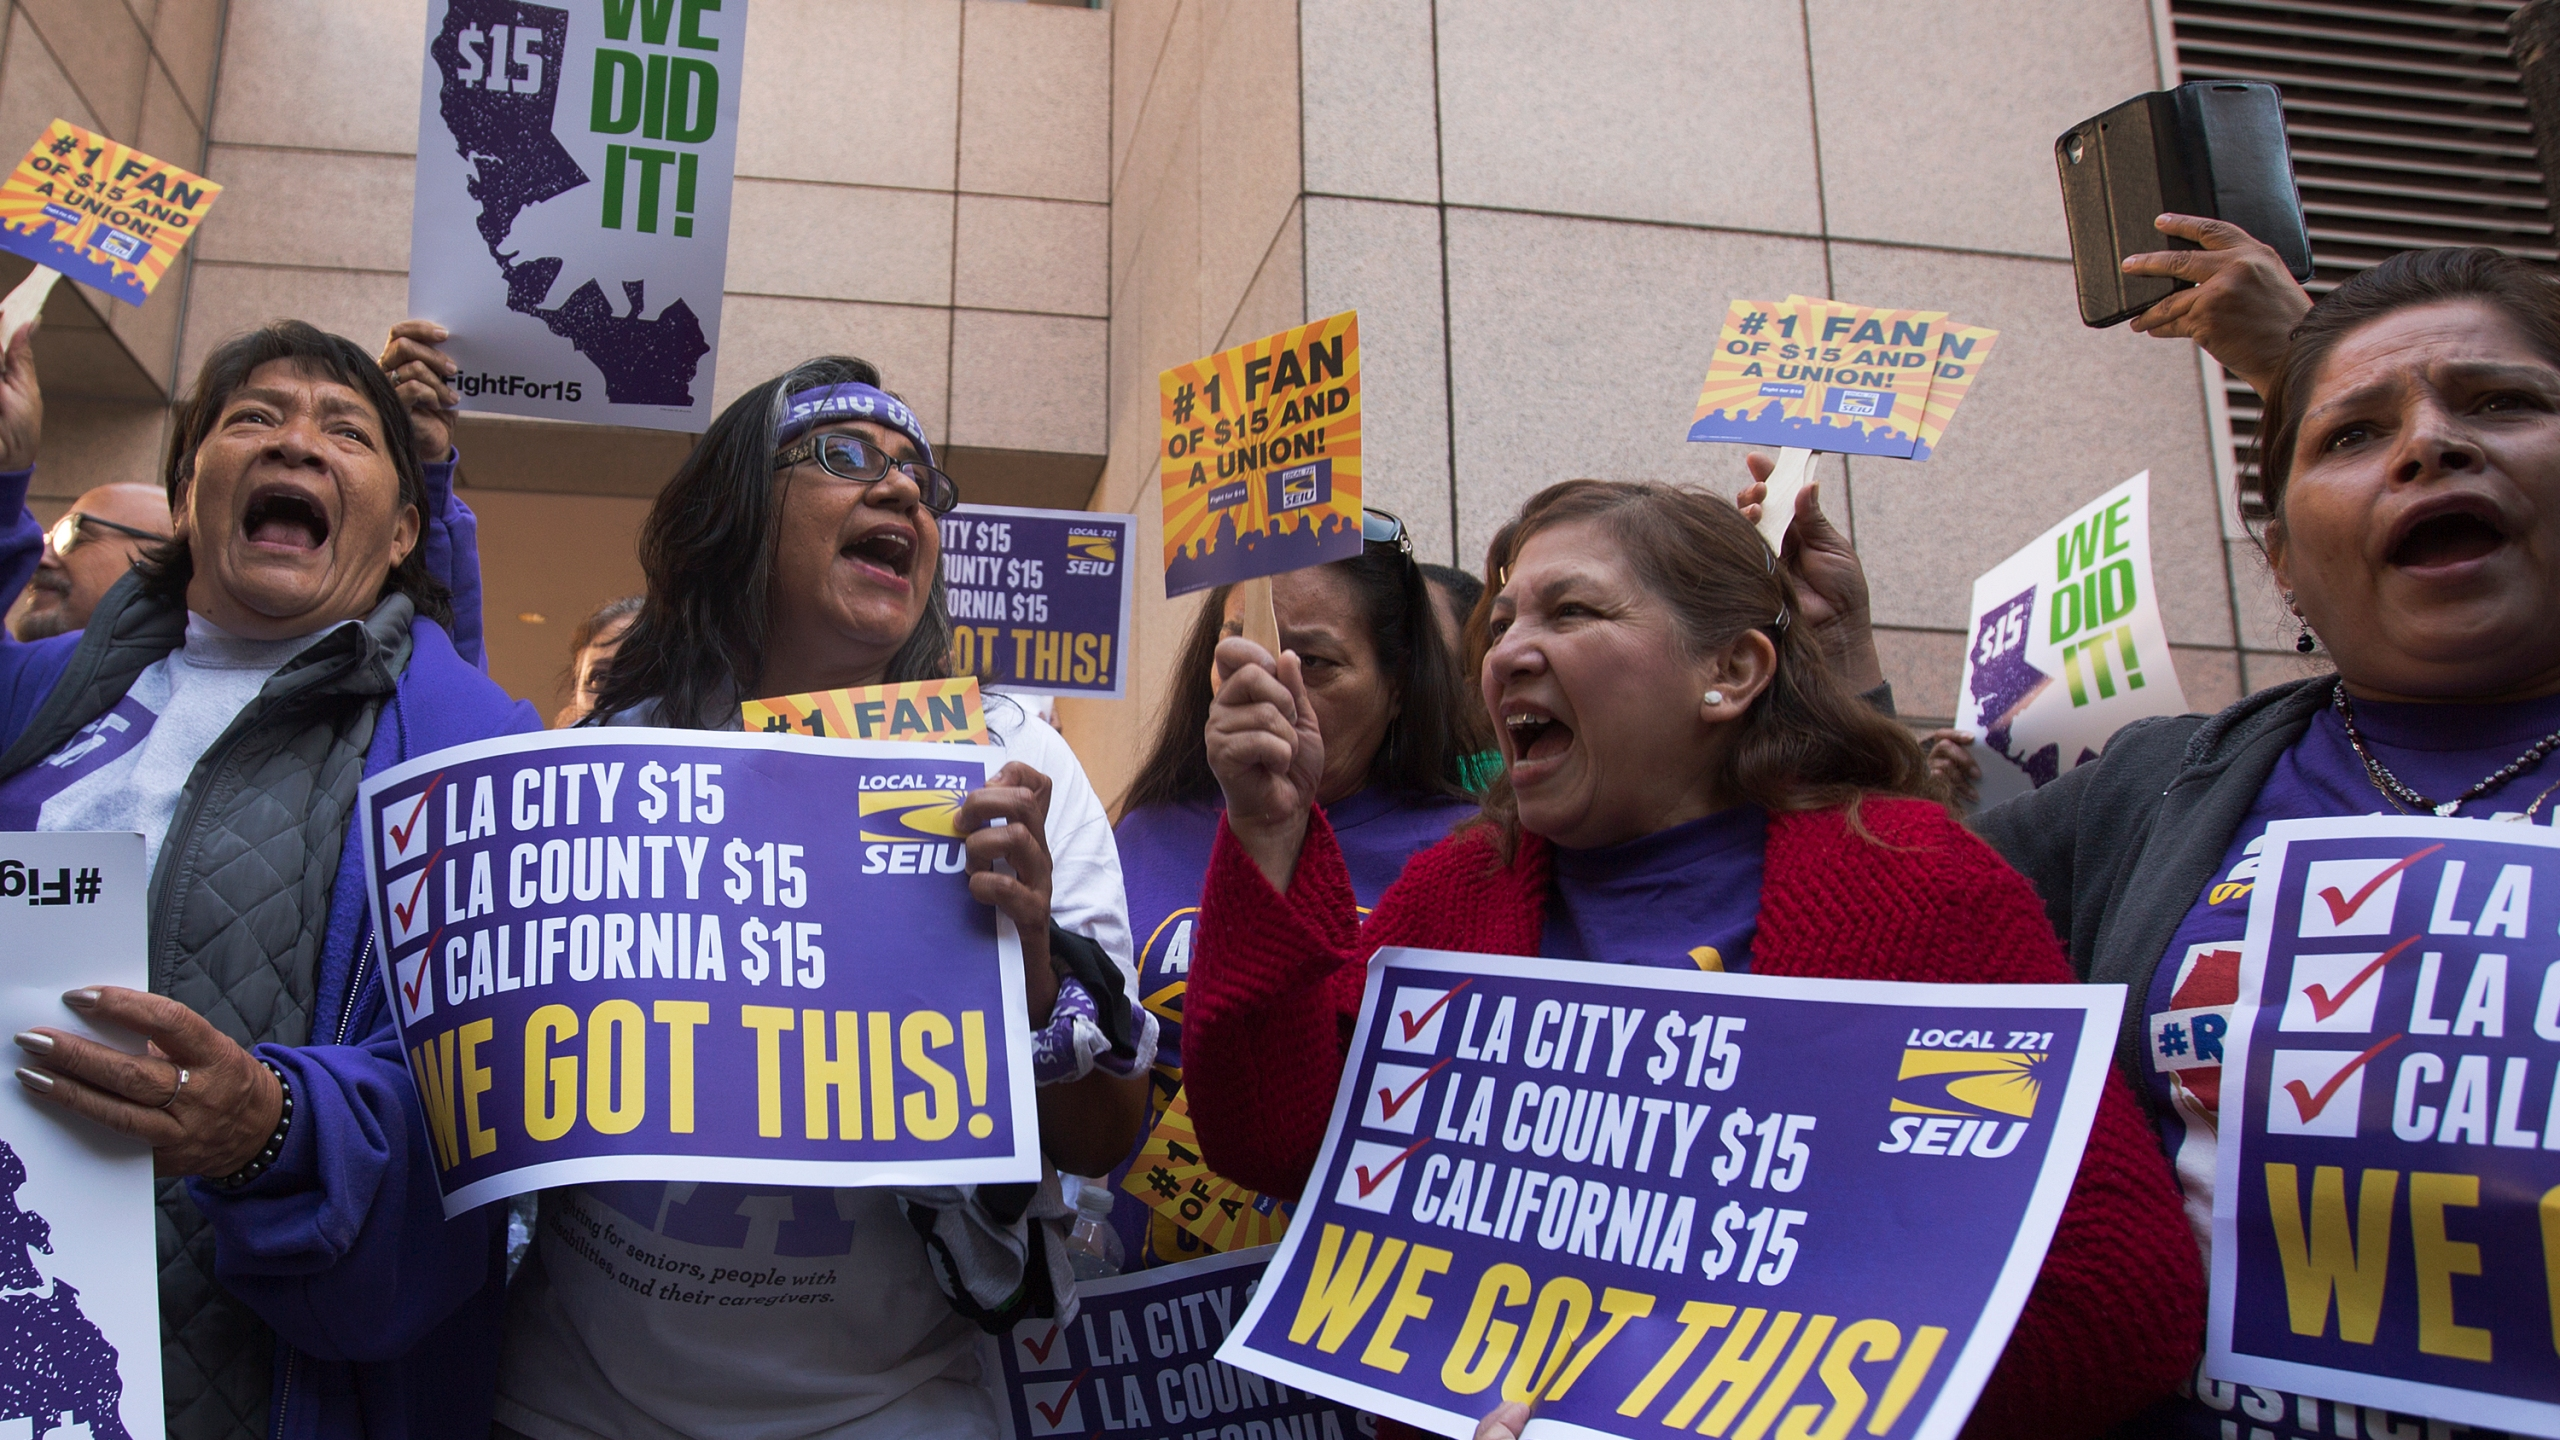 Service Employees International Union members celebrate after Jerry Brown signed landmark legislation SB 3 into law on April 4, 2016 in Los Angeles. (Credit: David McNew/Getty Images)